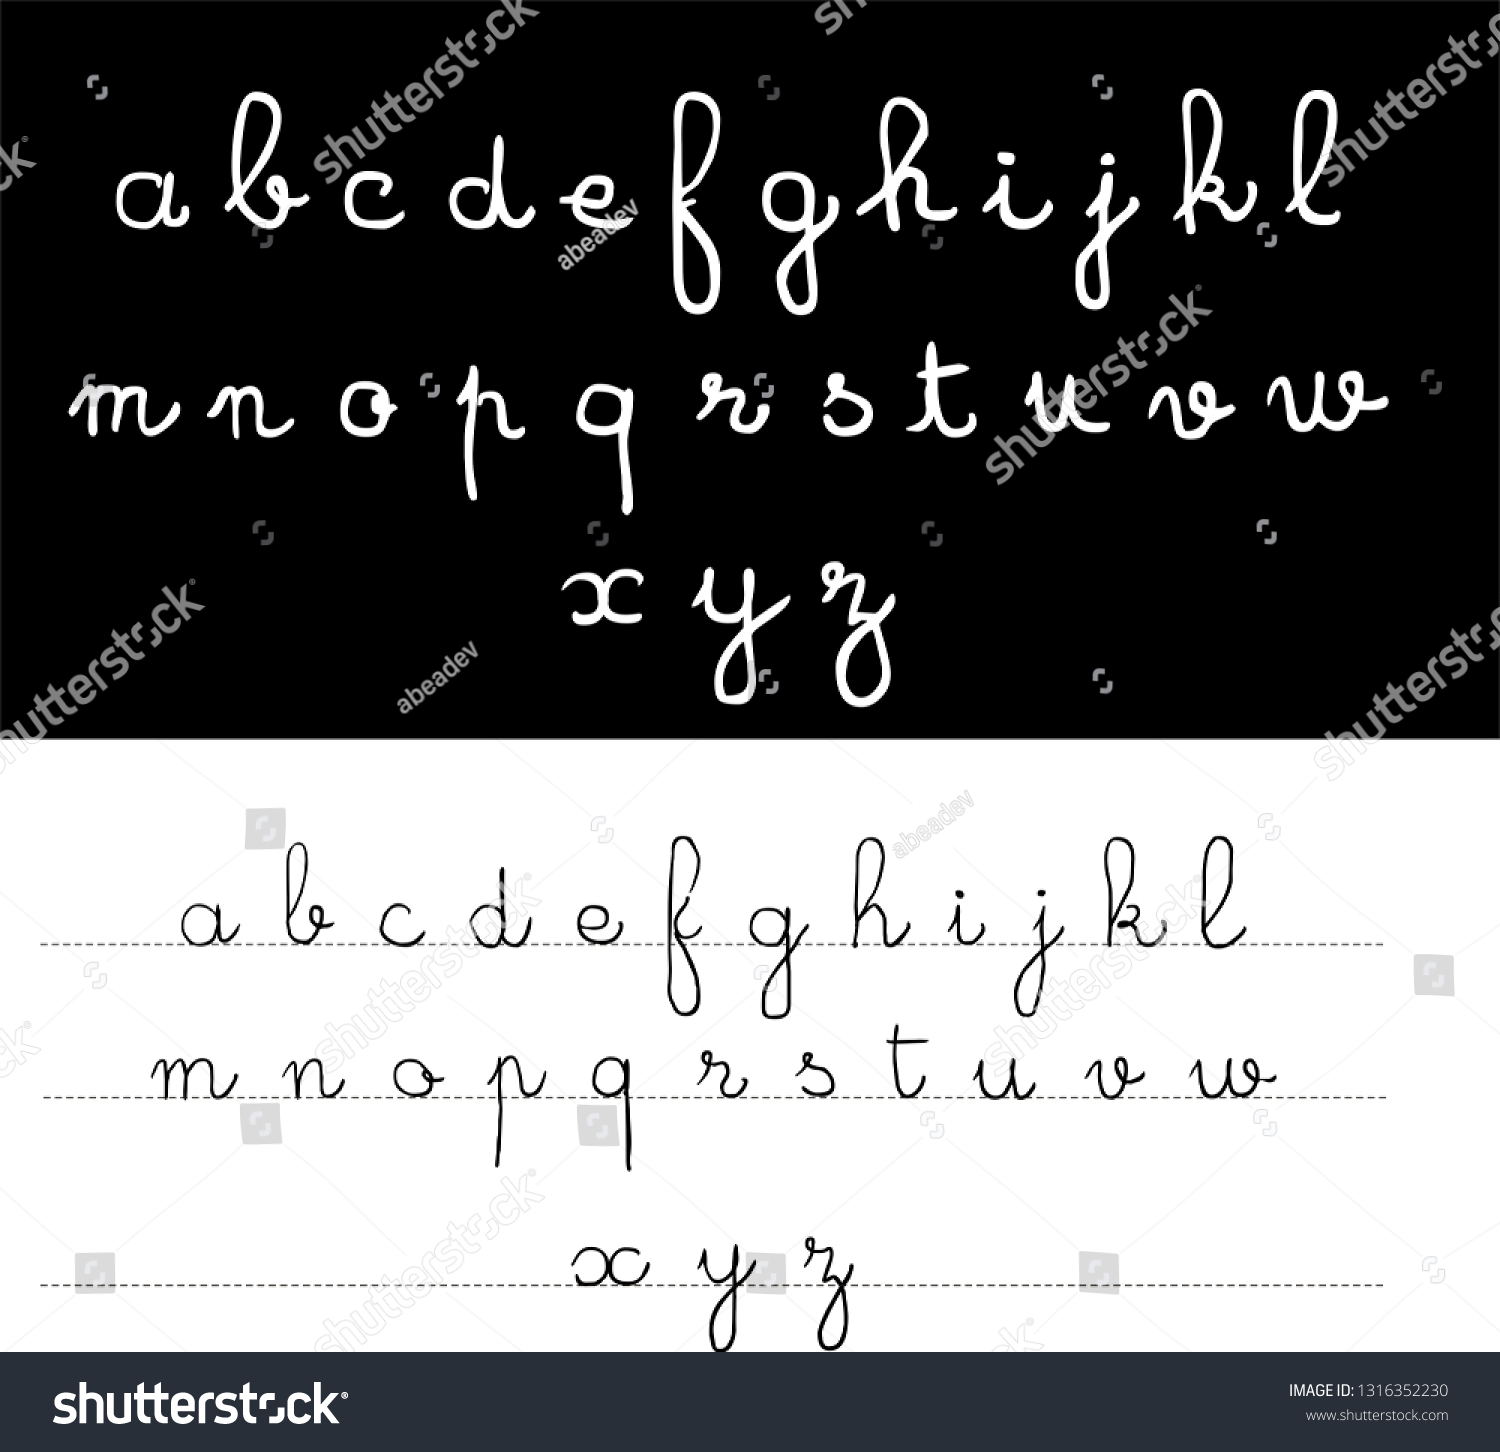 Handwritten Old School Script Font Latin Stock Vector